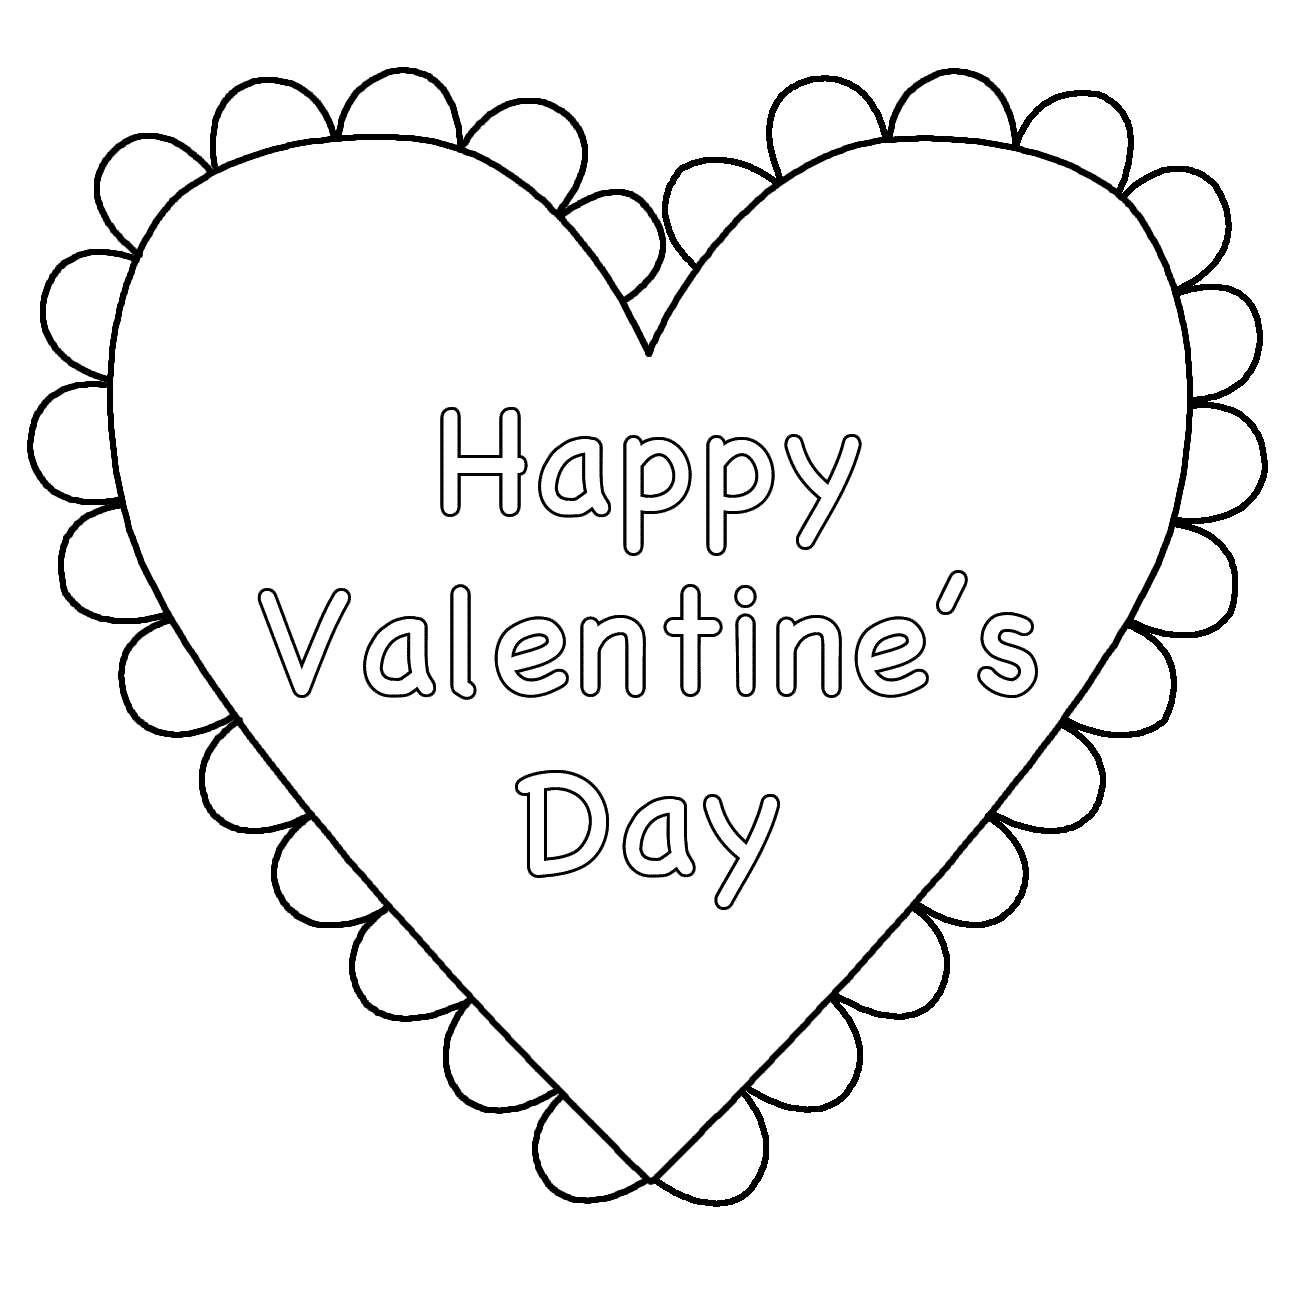 The Best Free Valentines Day Drawing Images Download From 50 Free